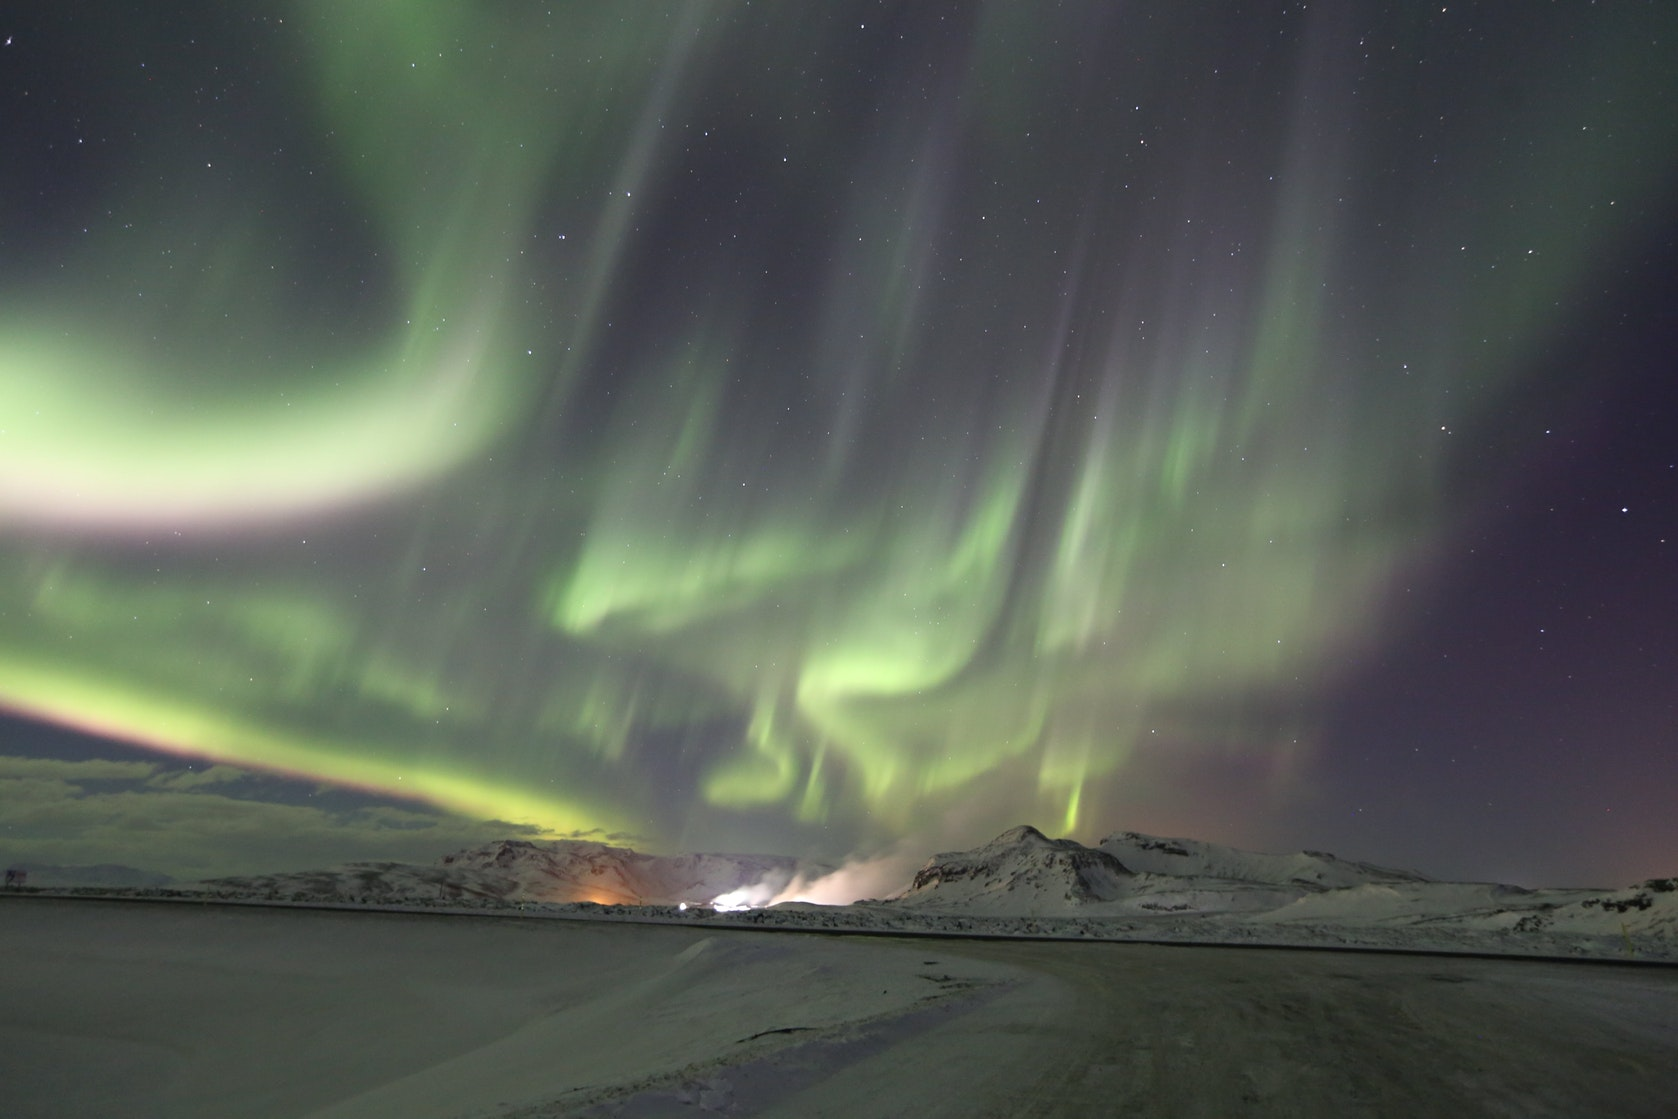 The Northern Lights dancing over a snowy mountain